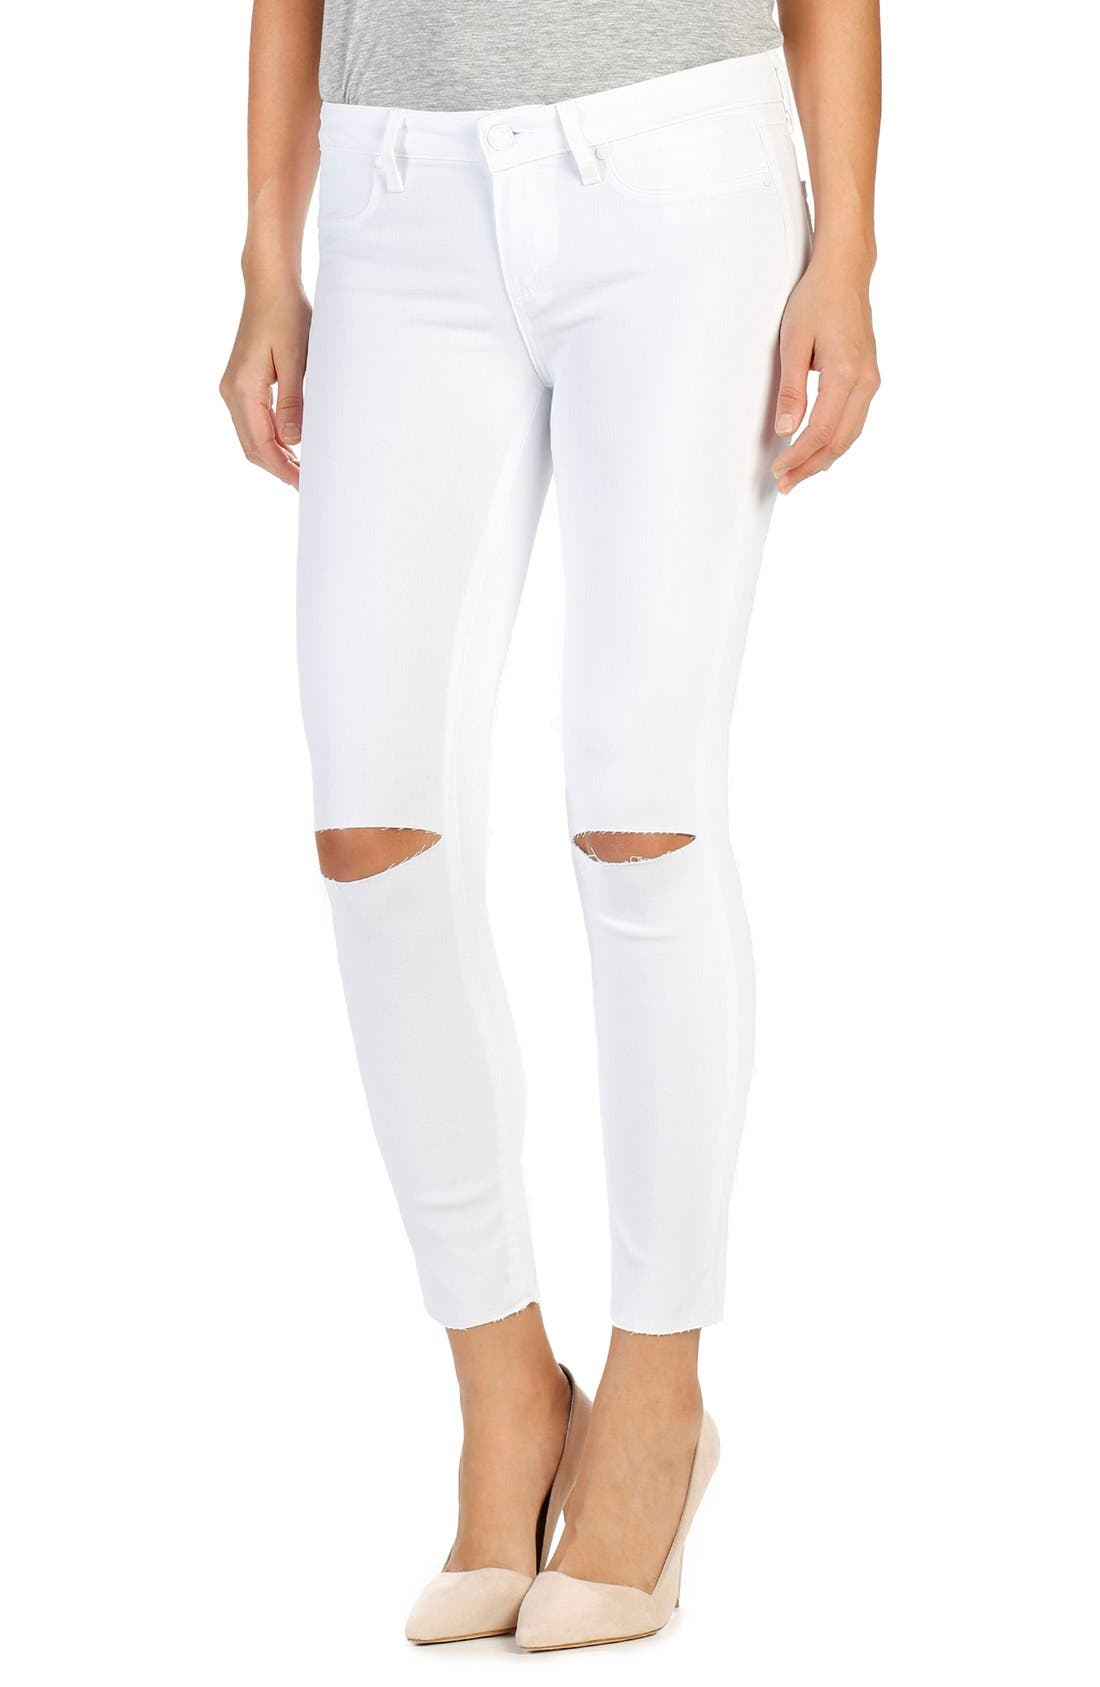 Alternate Image 1 Selected - PAIGE Transcend - Verdugo Ankle Skinny Jeans (White Cloud Destructed)